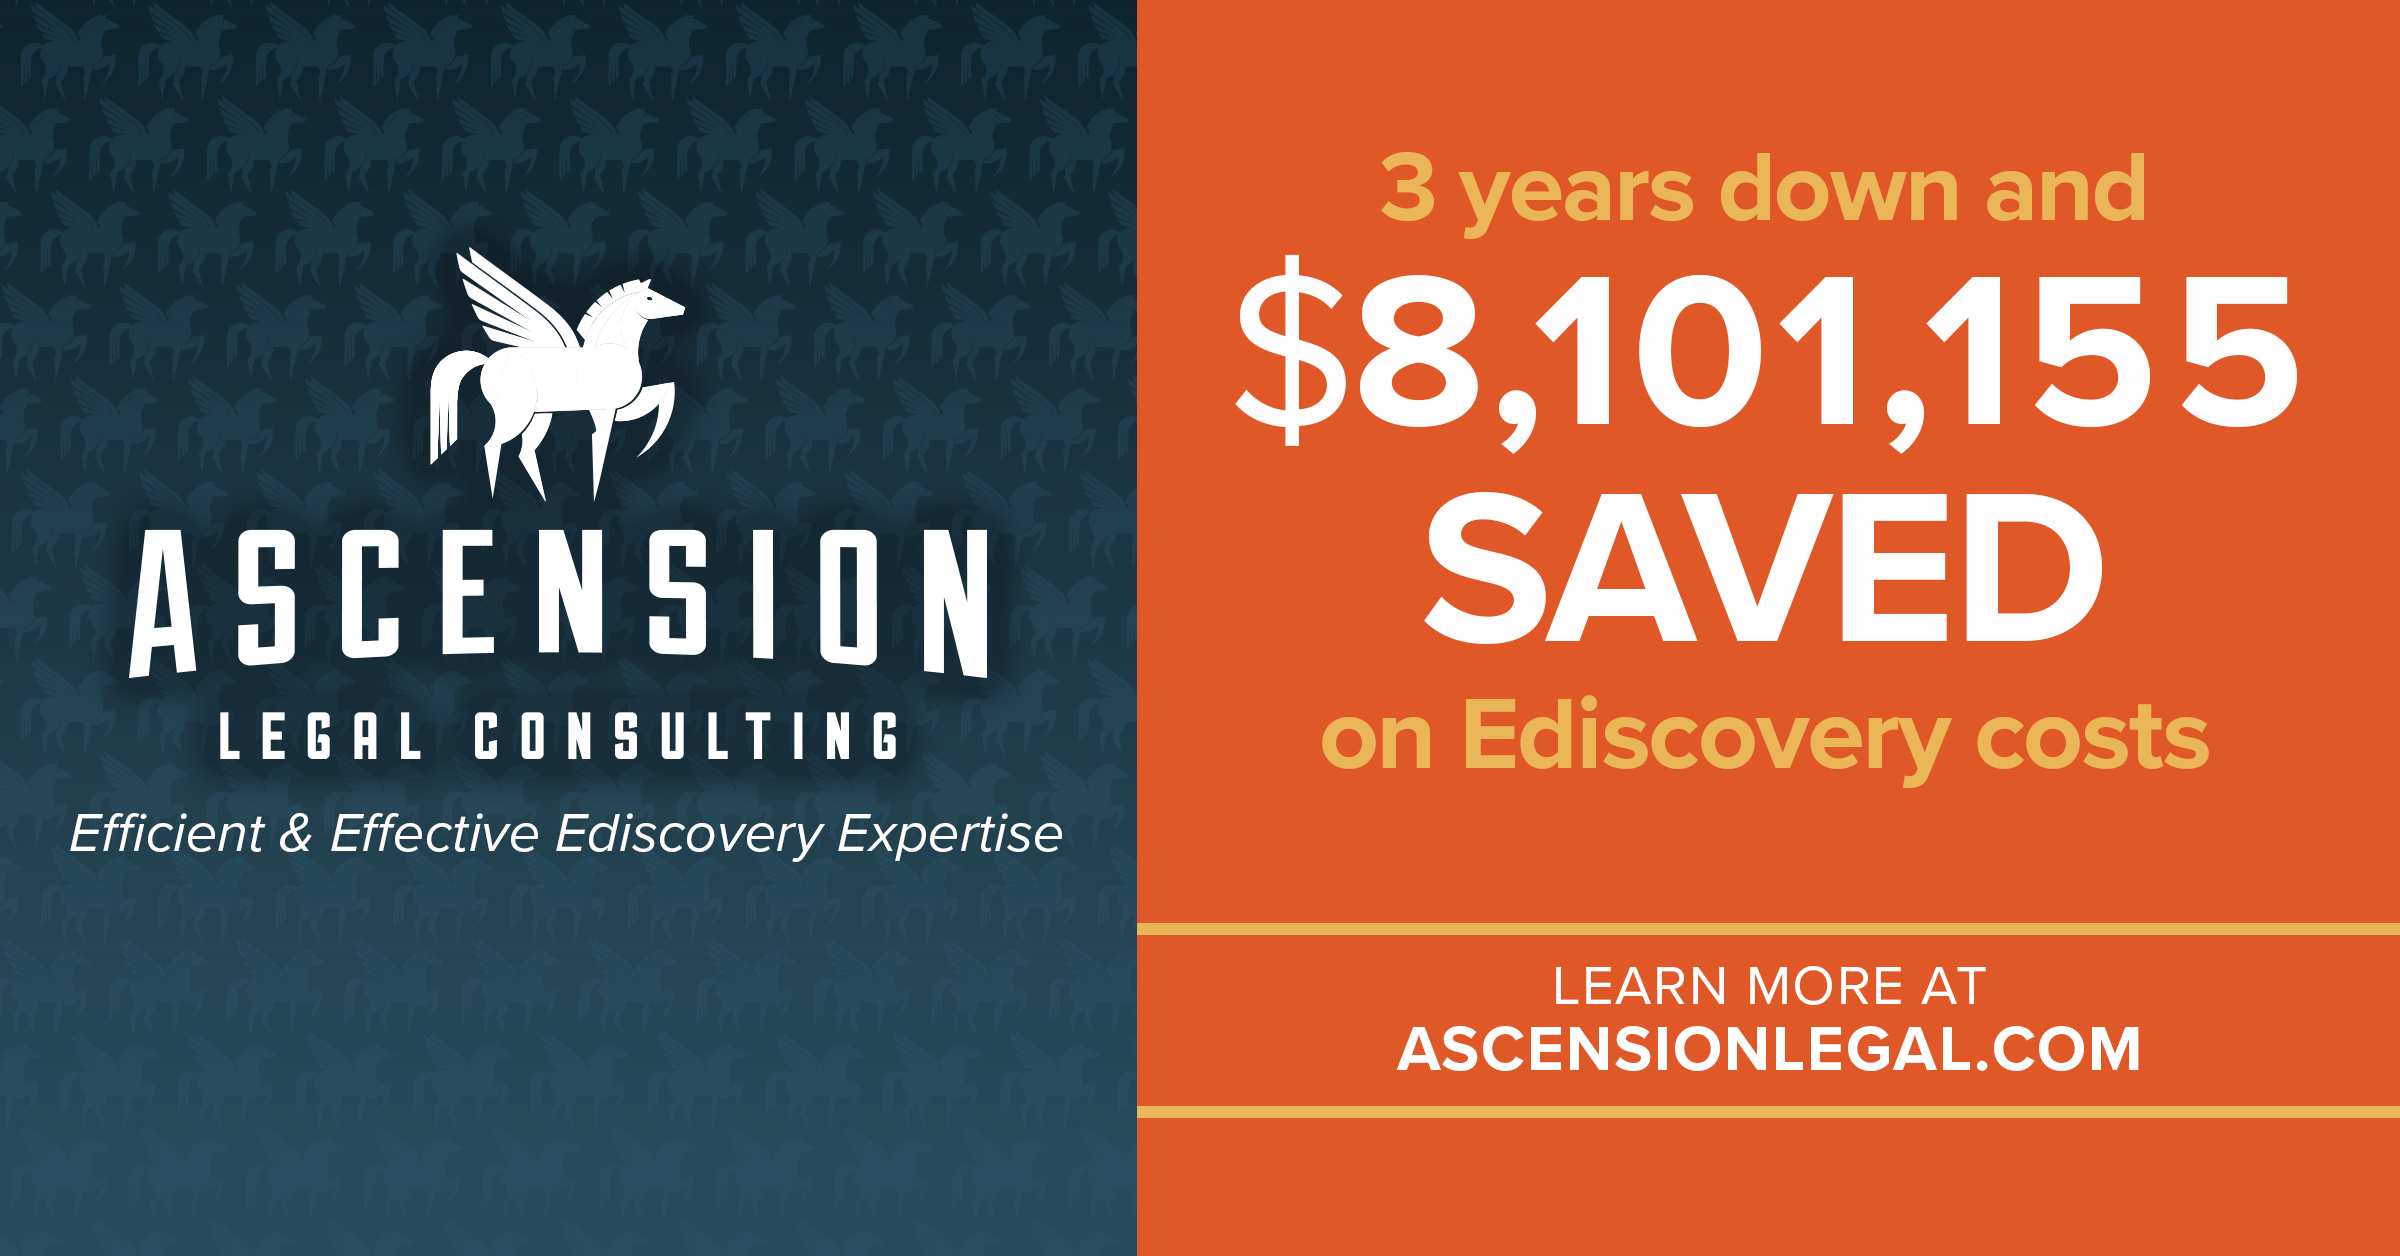 Ascension2018 Cost Savings Billboard.jpg